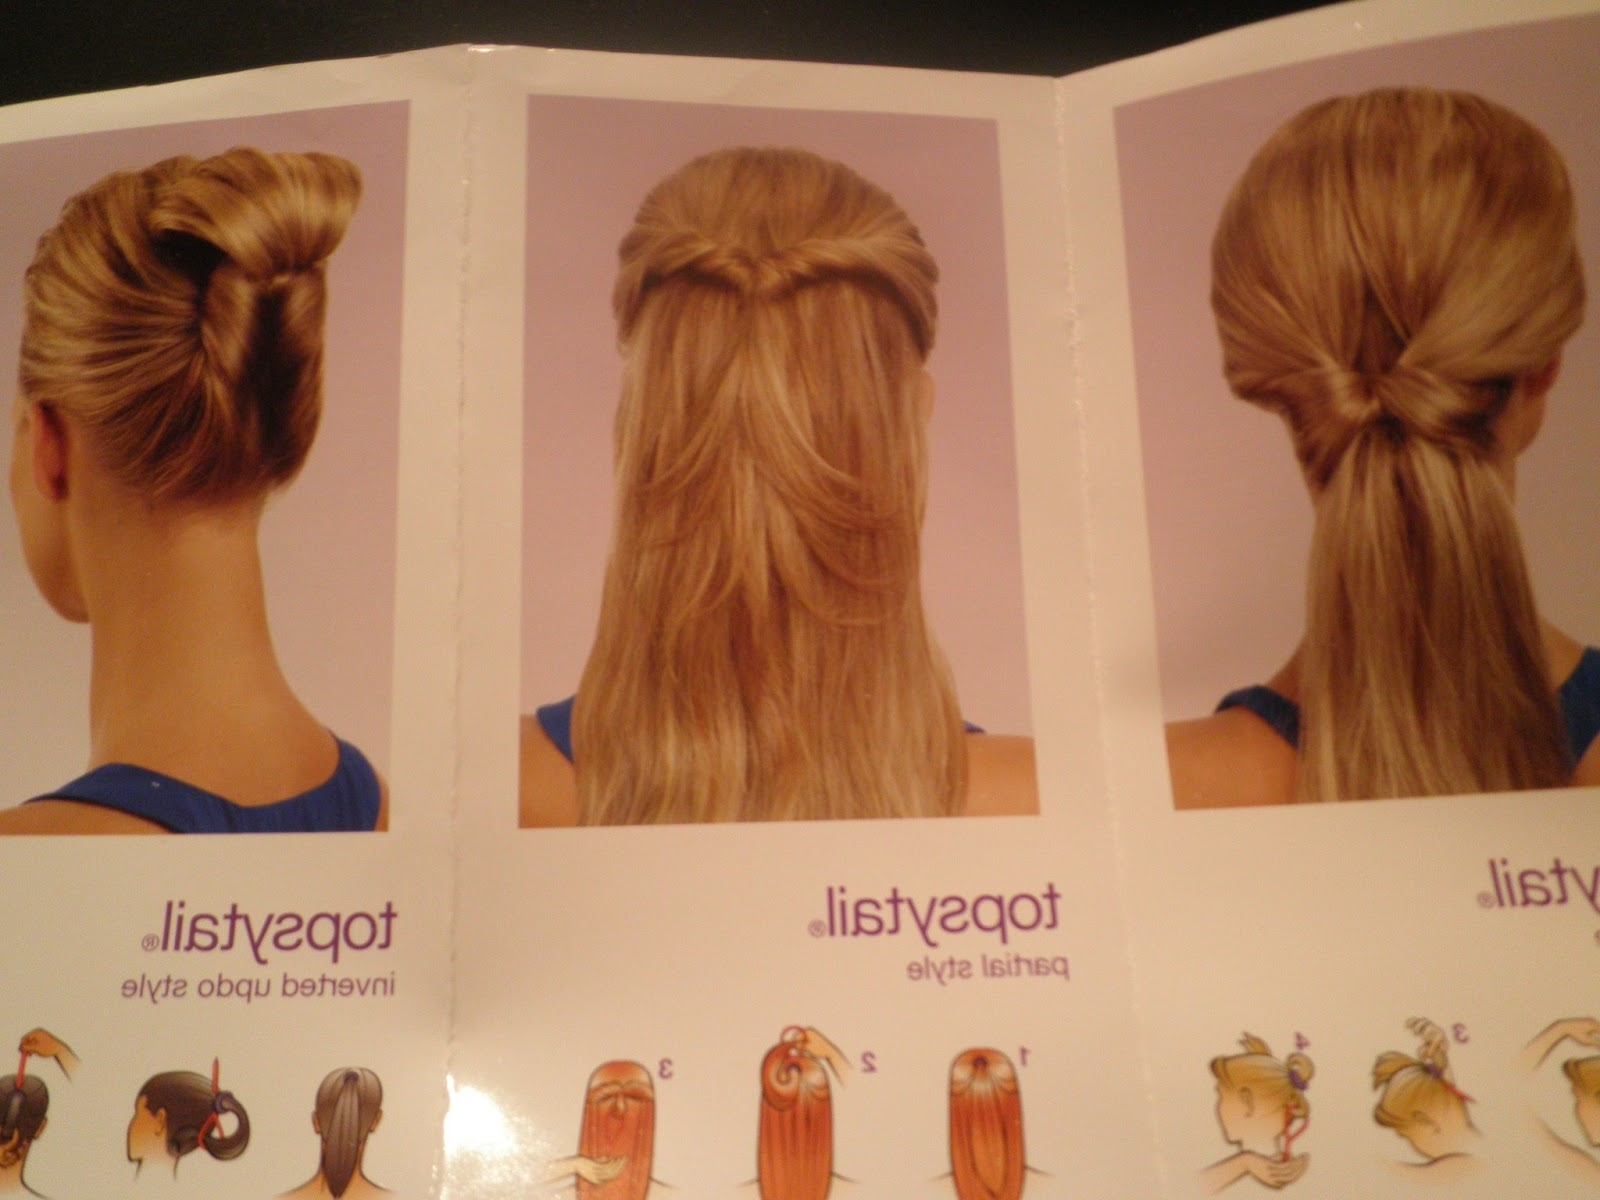 Best And Newest Topsy Tail Low Ponytails Intended For Phenomenalhaircare: Topsy Tail Updo Hairstyling (View 5 of 20)